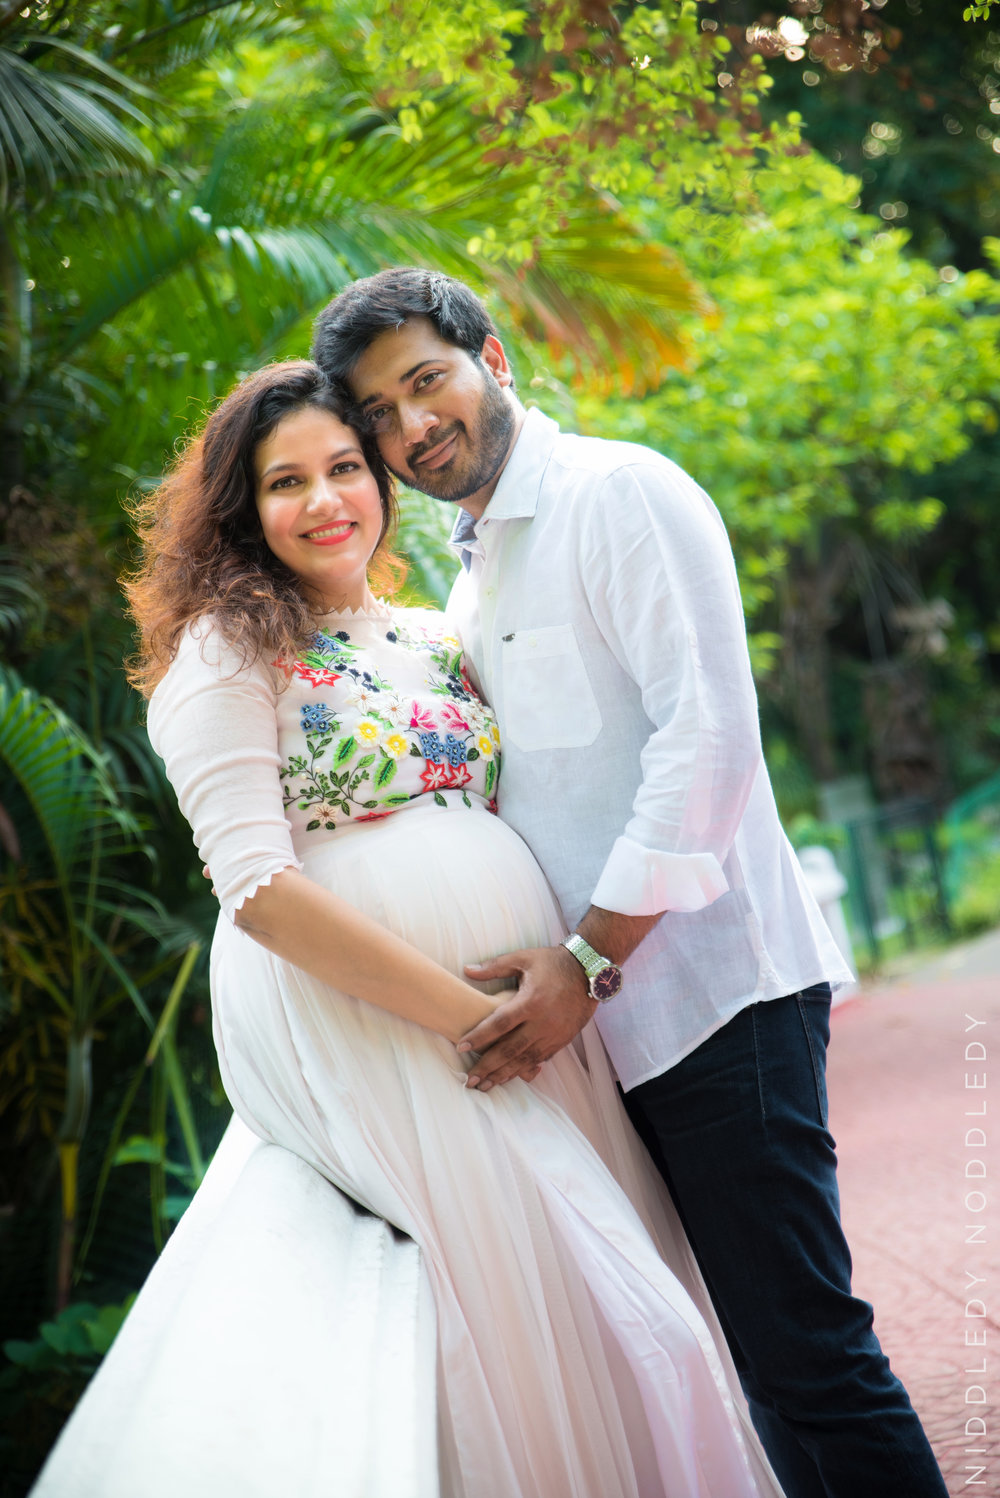 Richa Maternity Photoshoot ❤ NiddledyNoddledy.com ~ Bumps to Babies Photography, Kolkata - 07.jpg